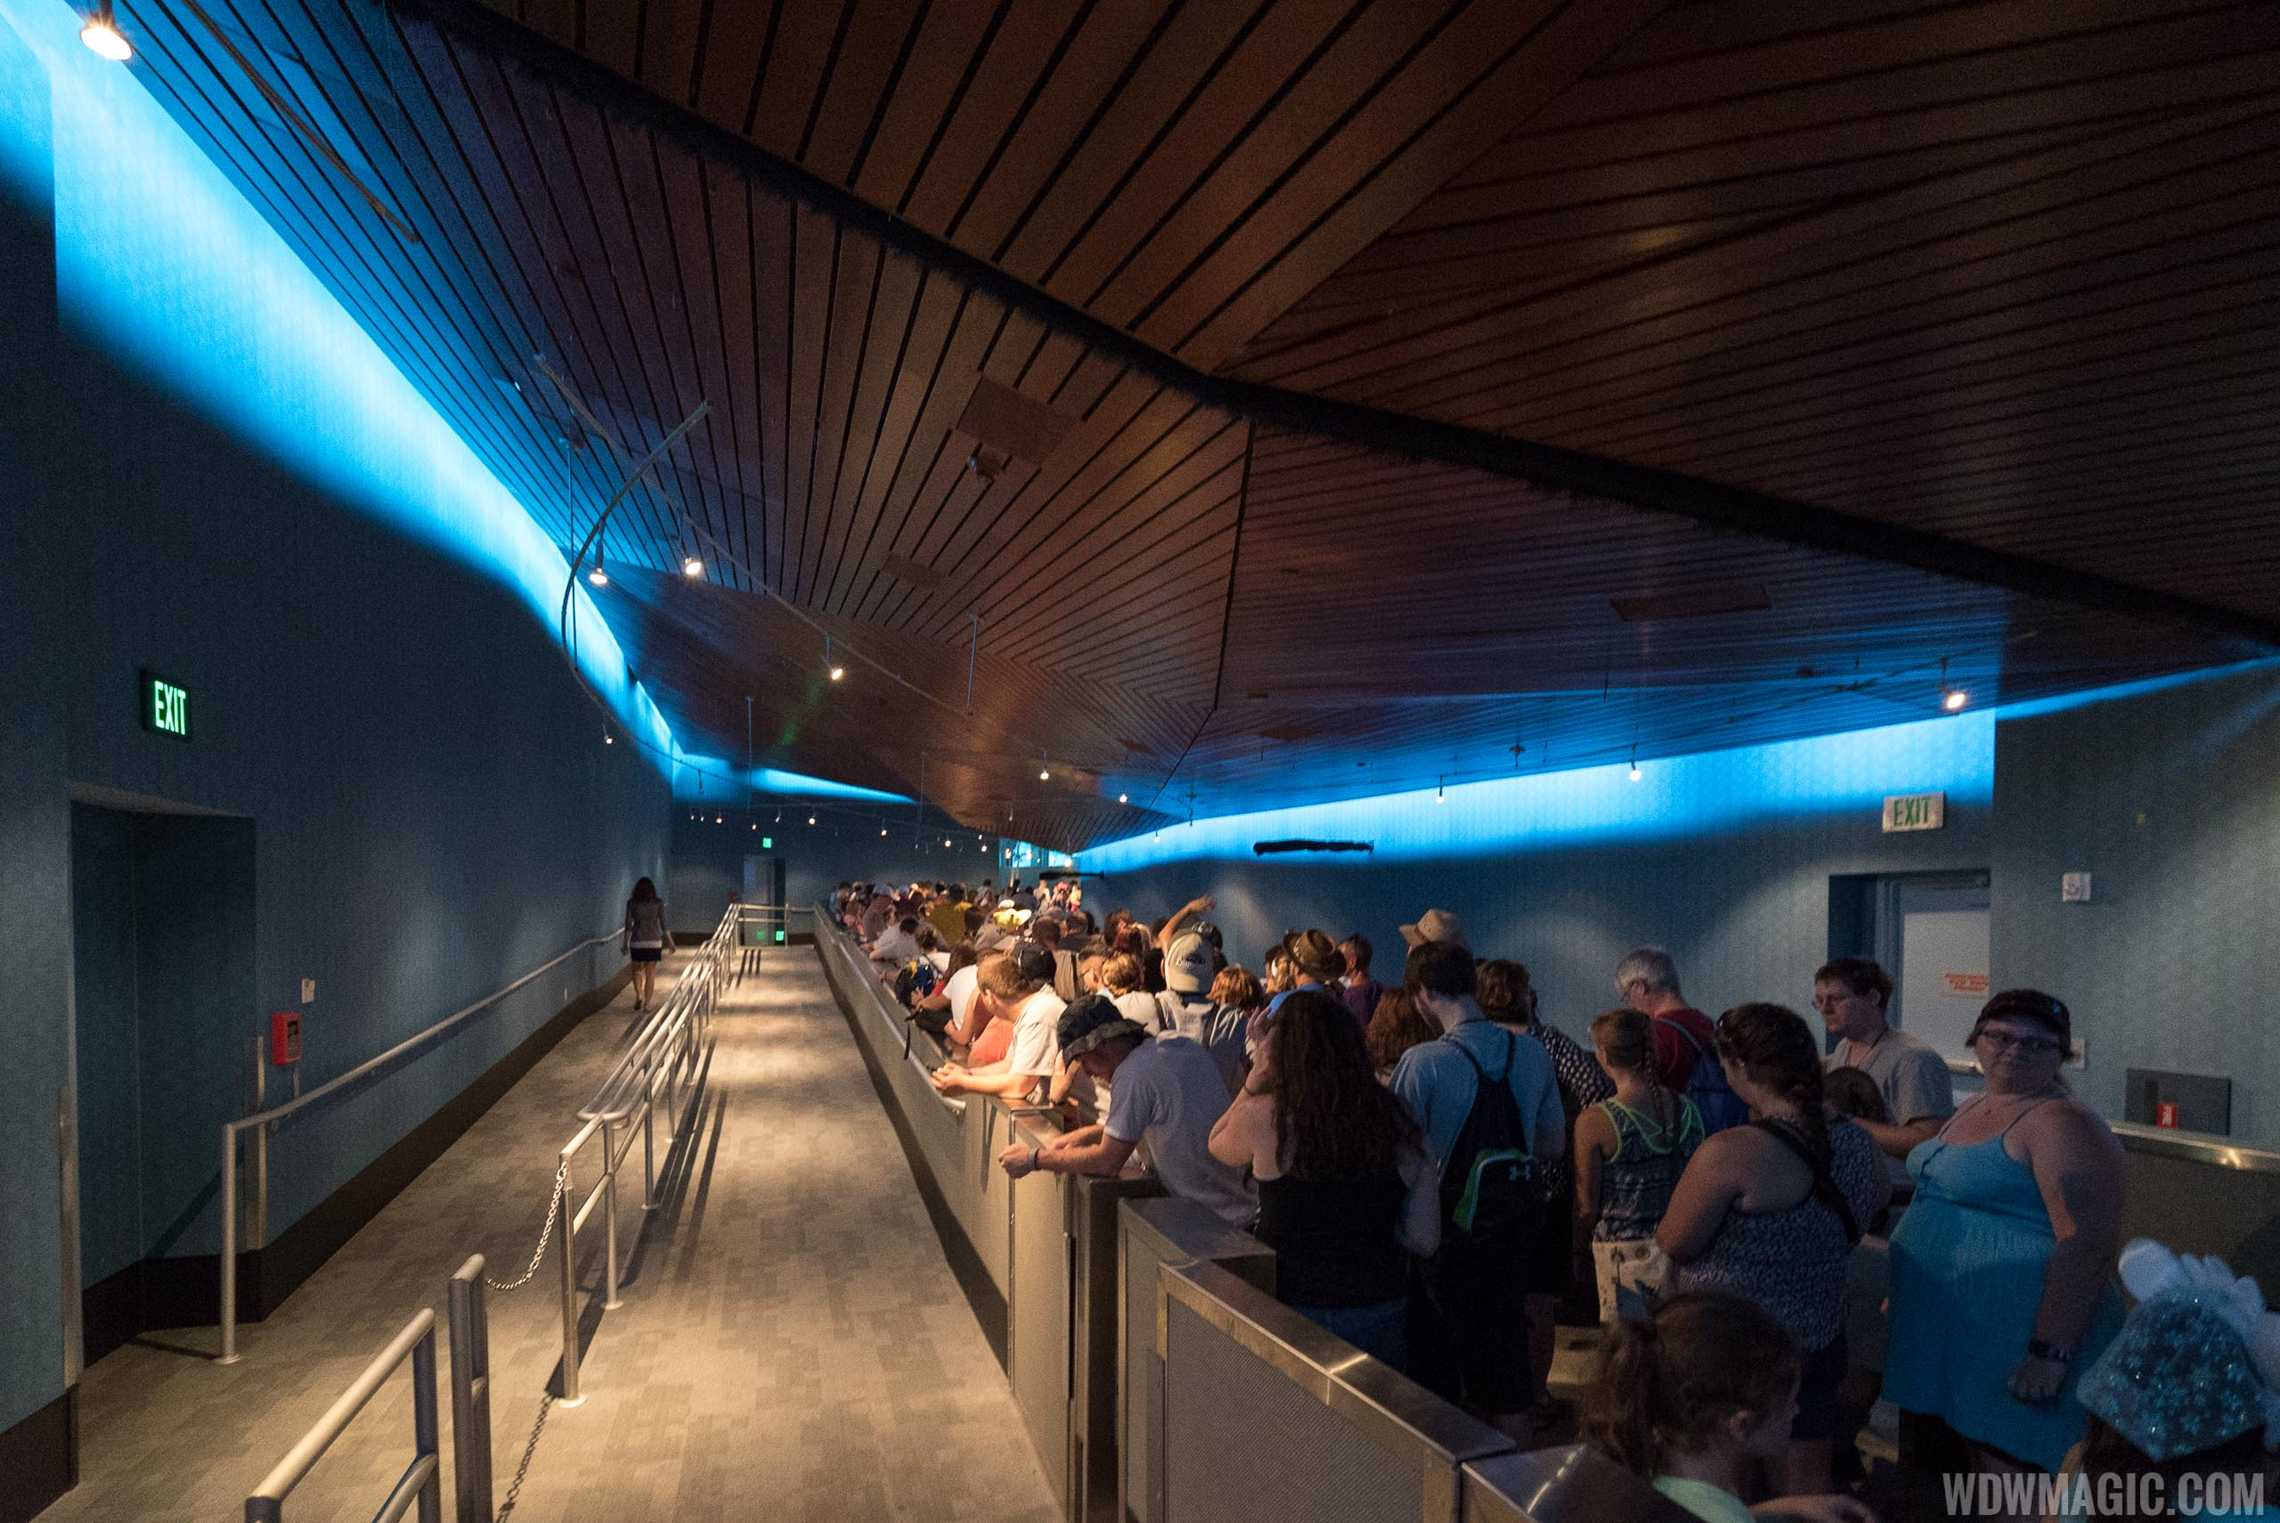 Soarin' reopens after refurbishment